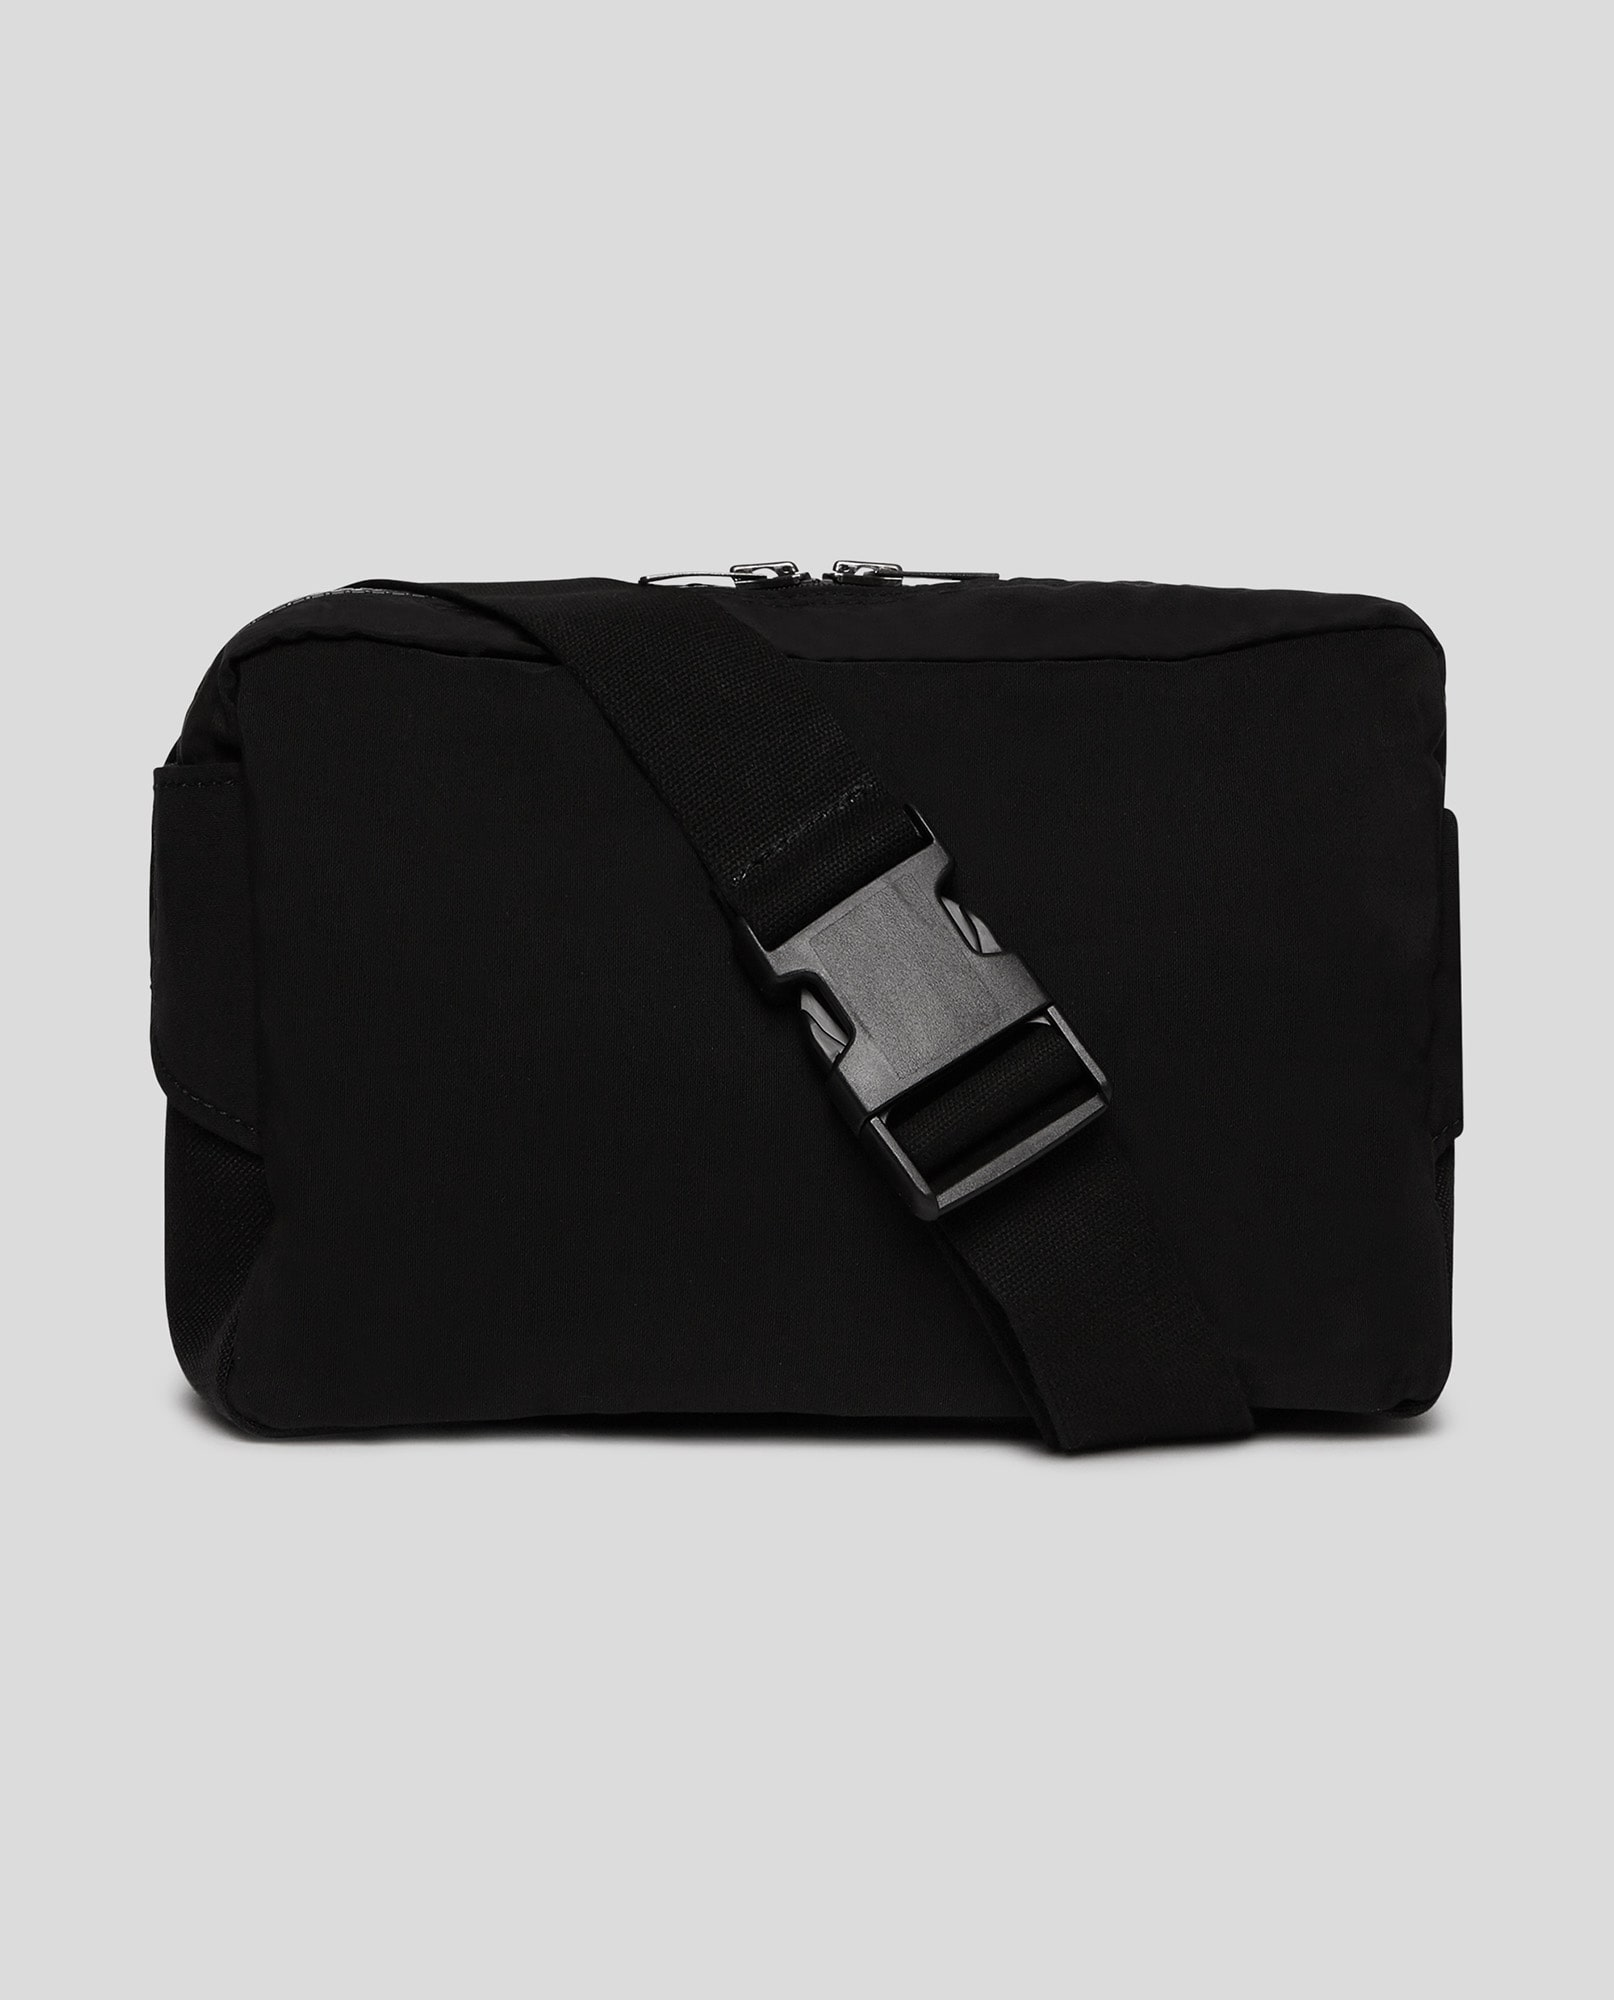 3L LOGO BELT BAG